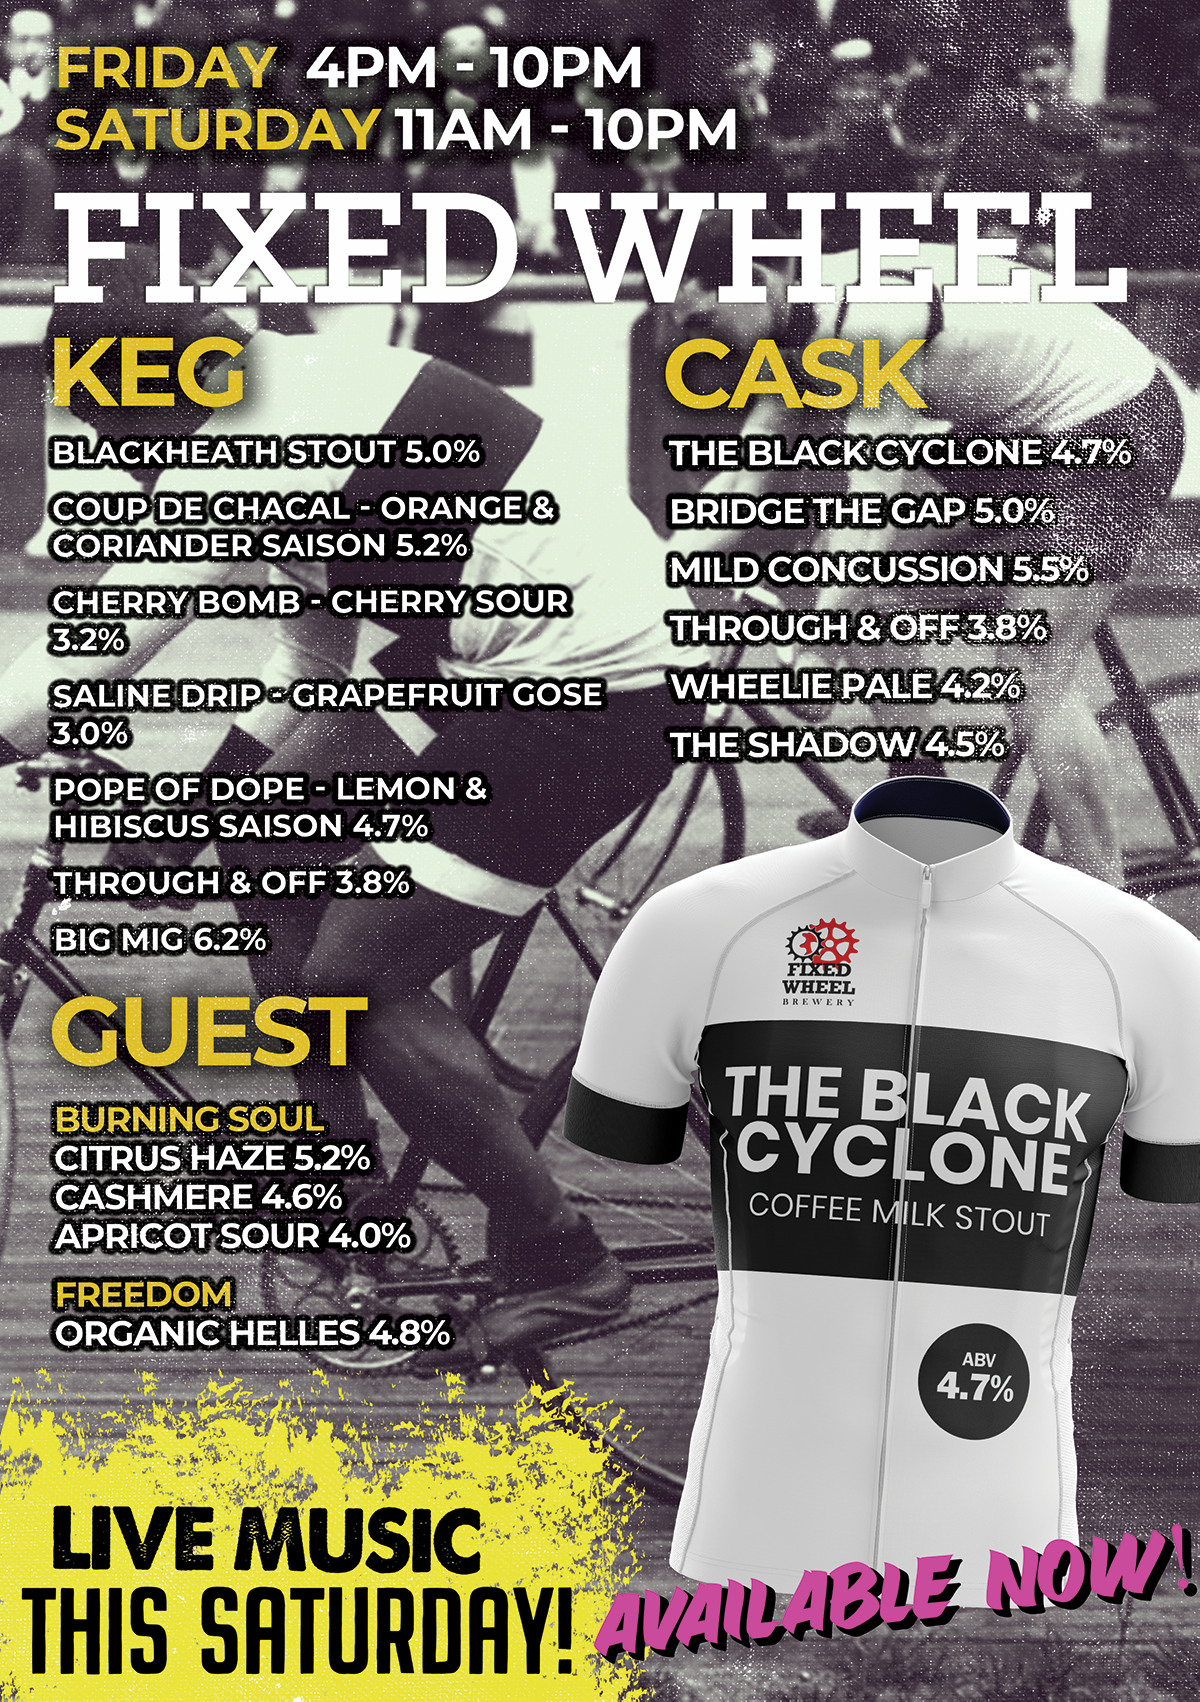 Fixed Wheel Brewery Black Cyclone